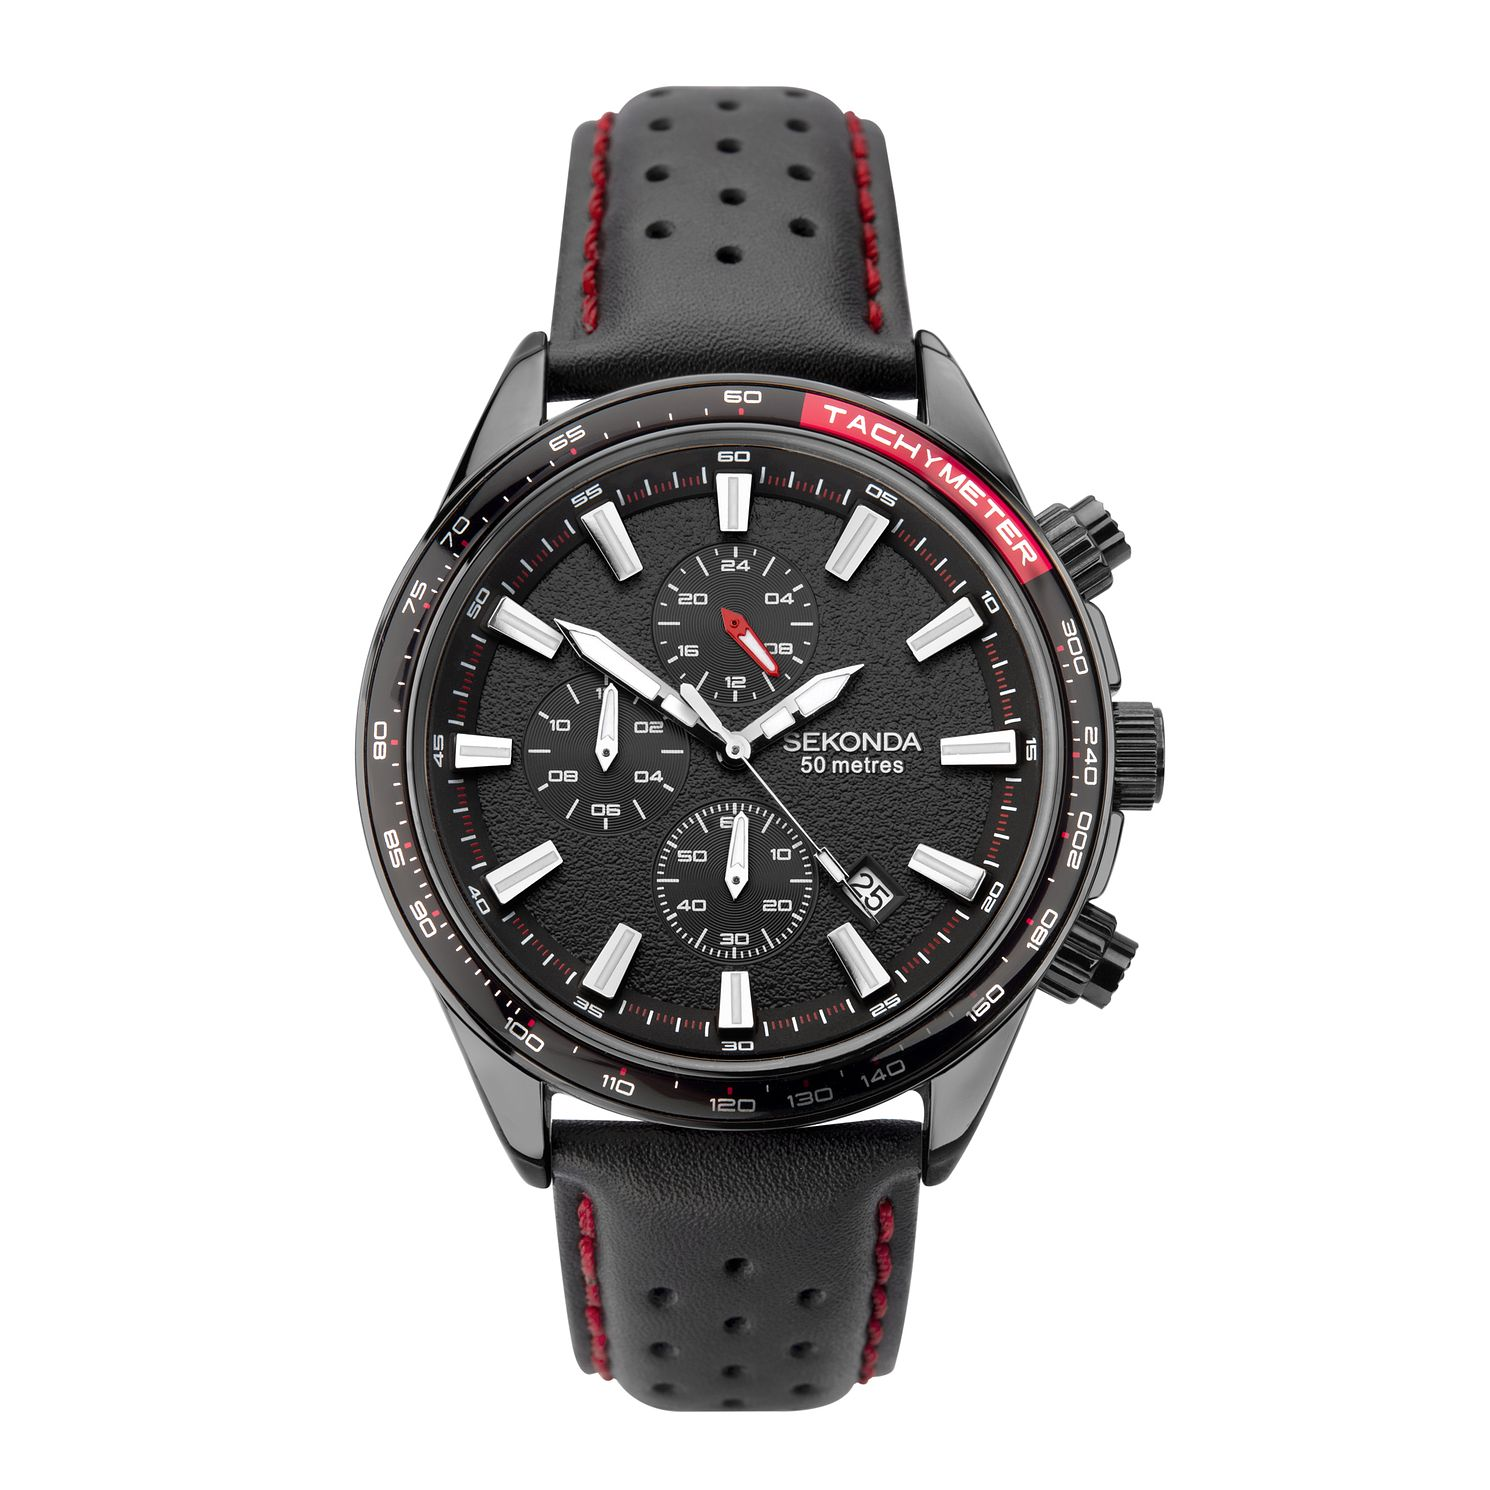 Sekonda Chronograph Men's Black Leather Strap Watch - Product number 5016045